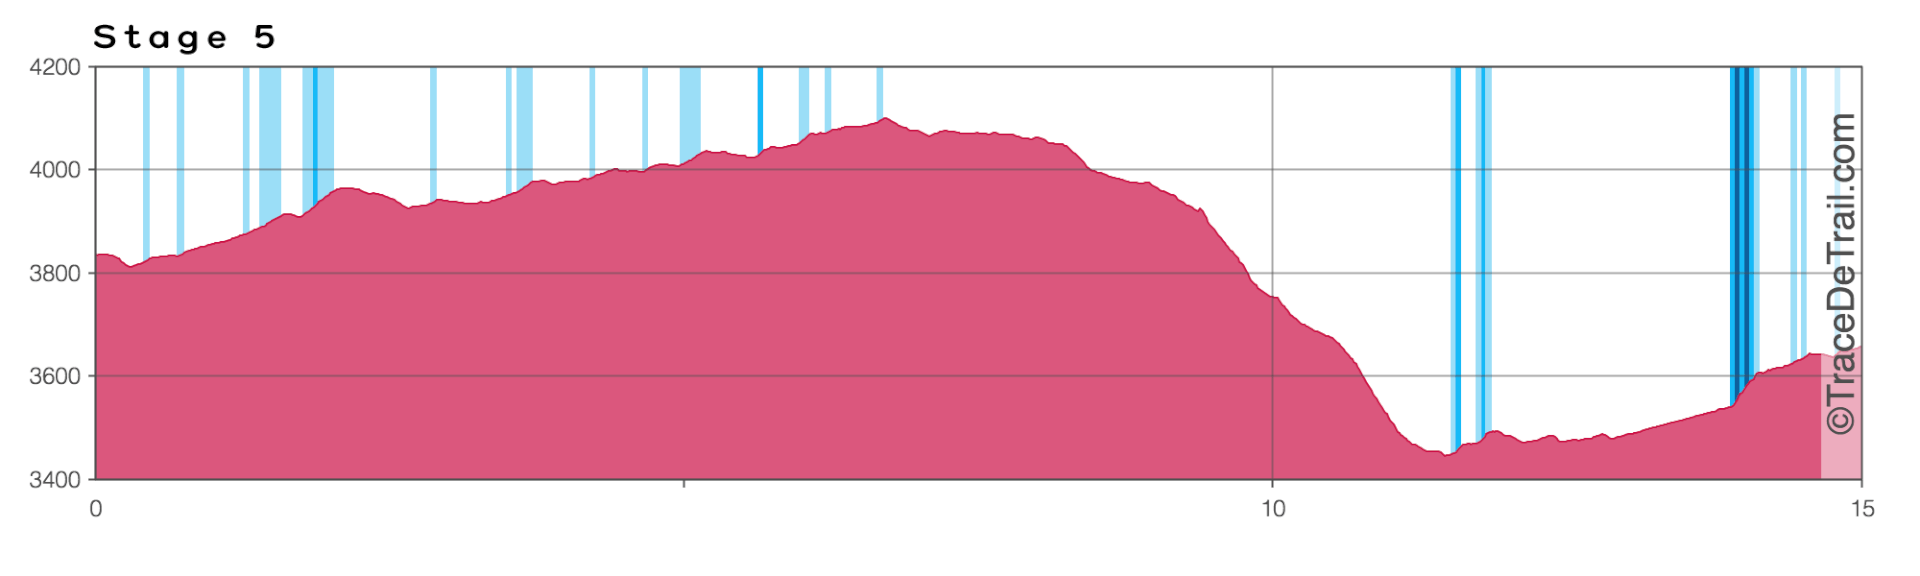 Profile chart for Mustang Trail Race stage 5